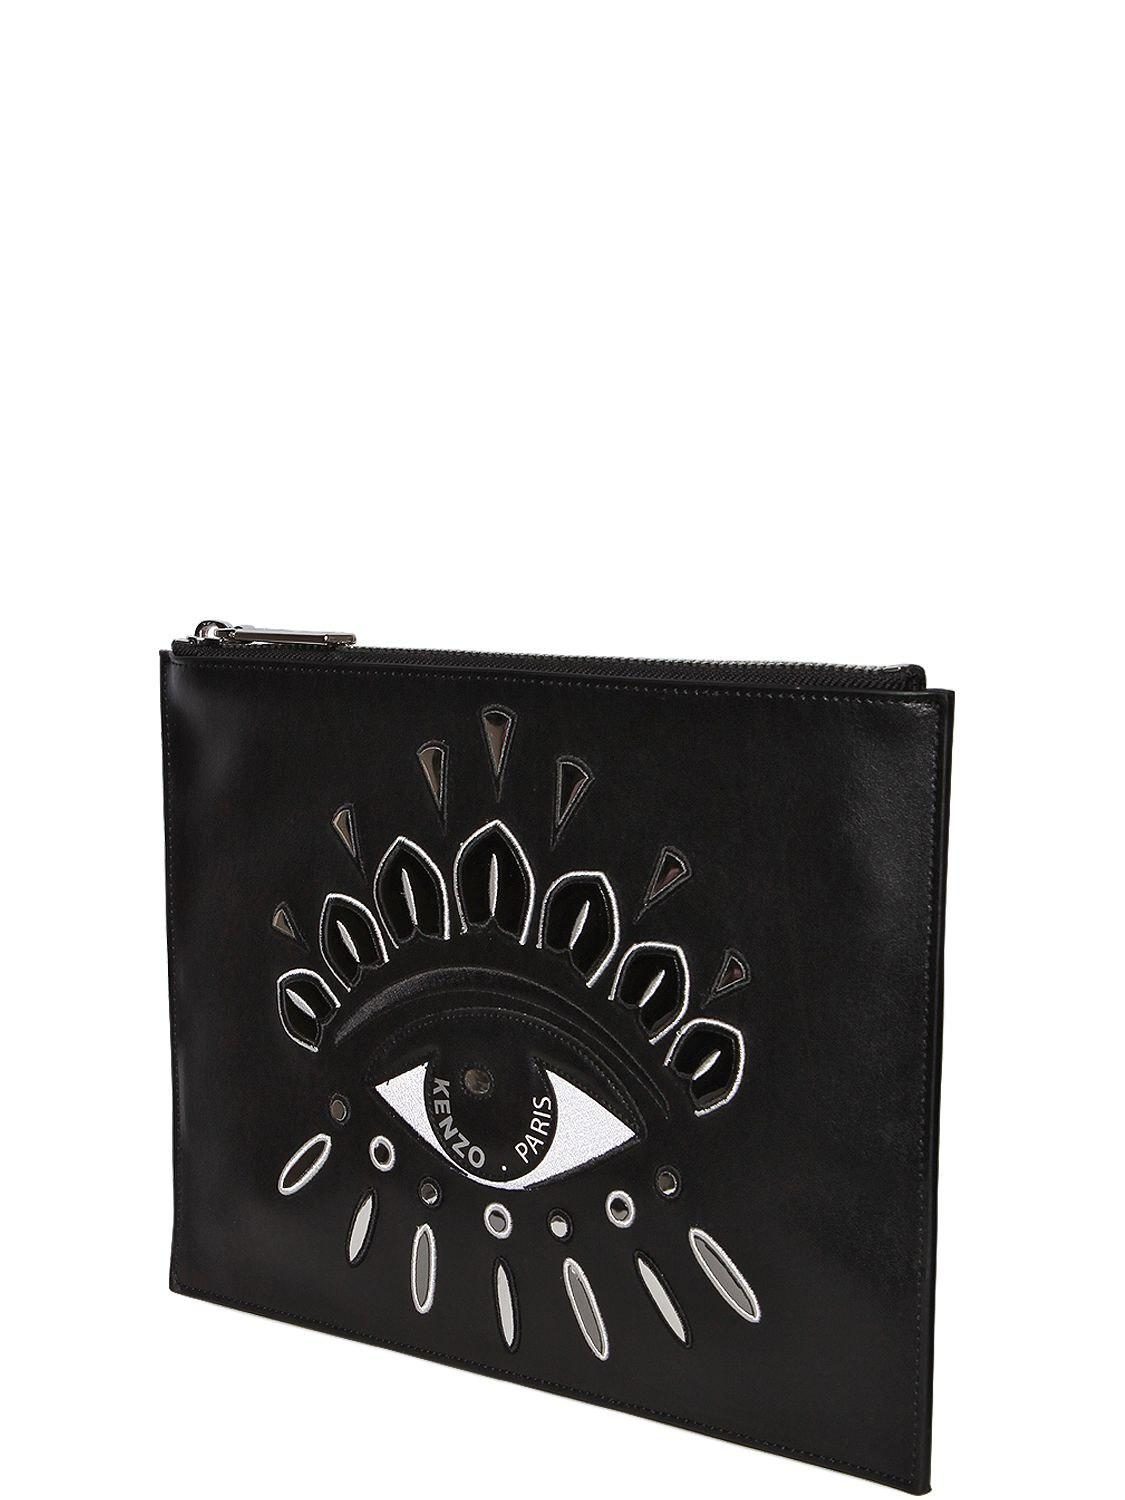 cd4480151f3 KENZO Eye Embroidered Leather Pouch in Black - Lyst